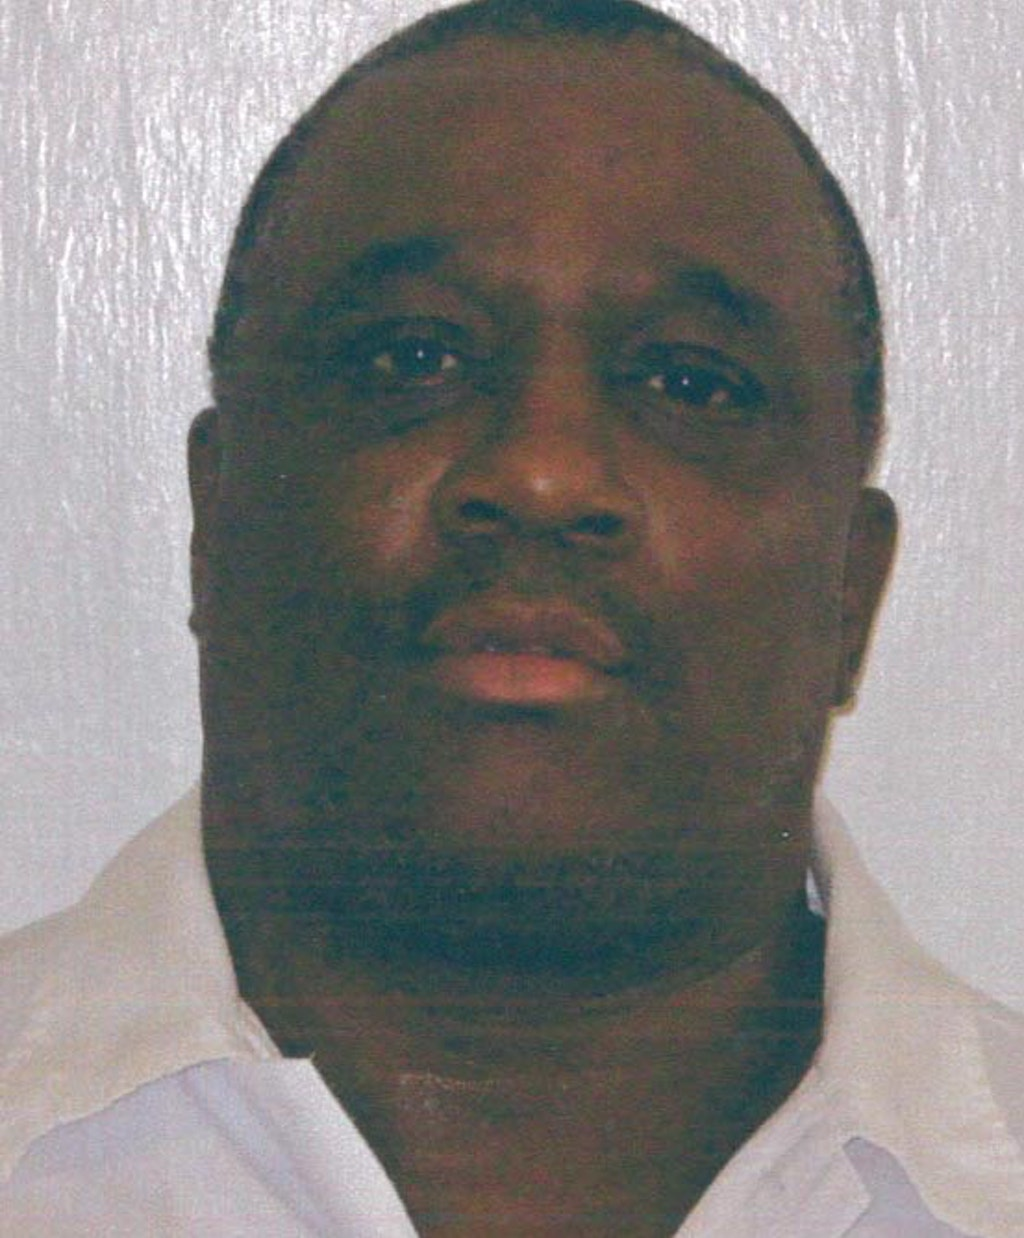 Despite Possible Innocence and Intellectual Disability, Alabama Intends to Execute Rocky Myers